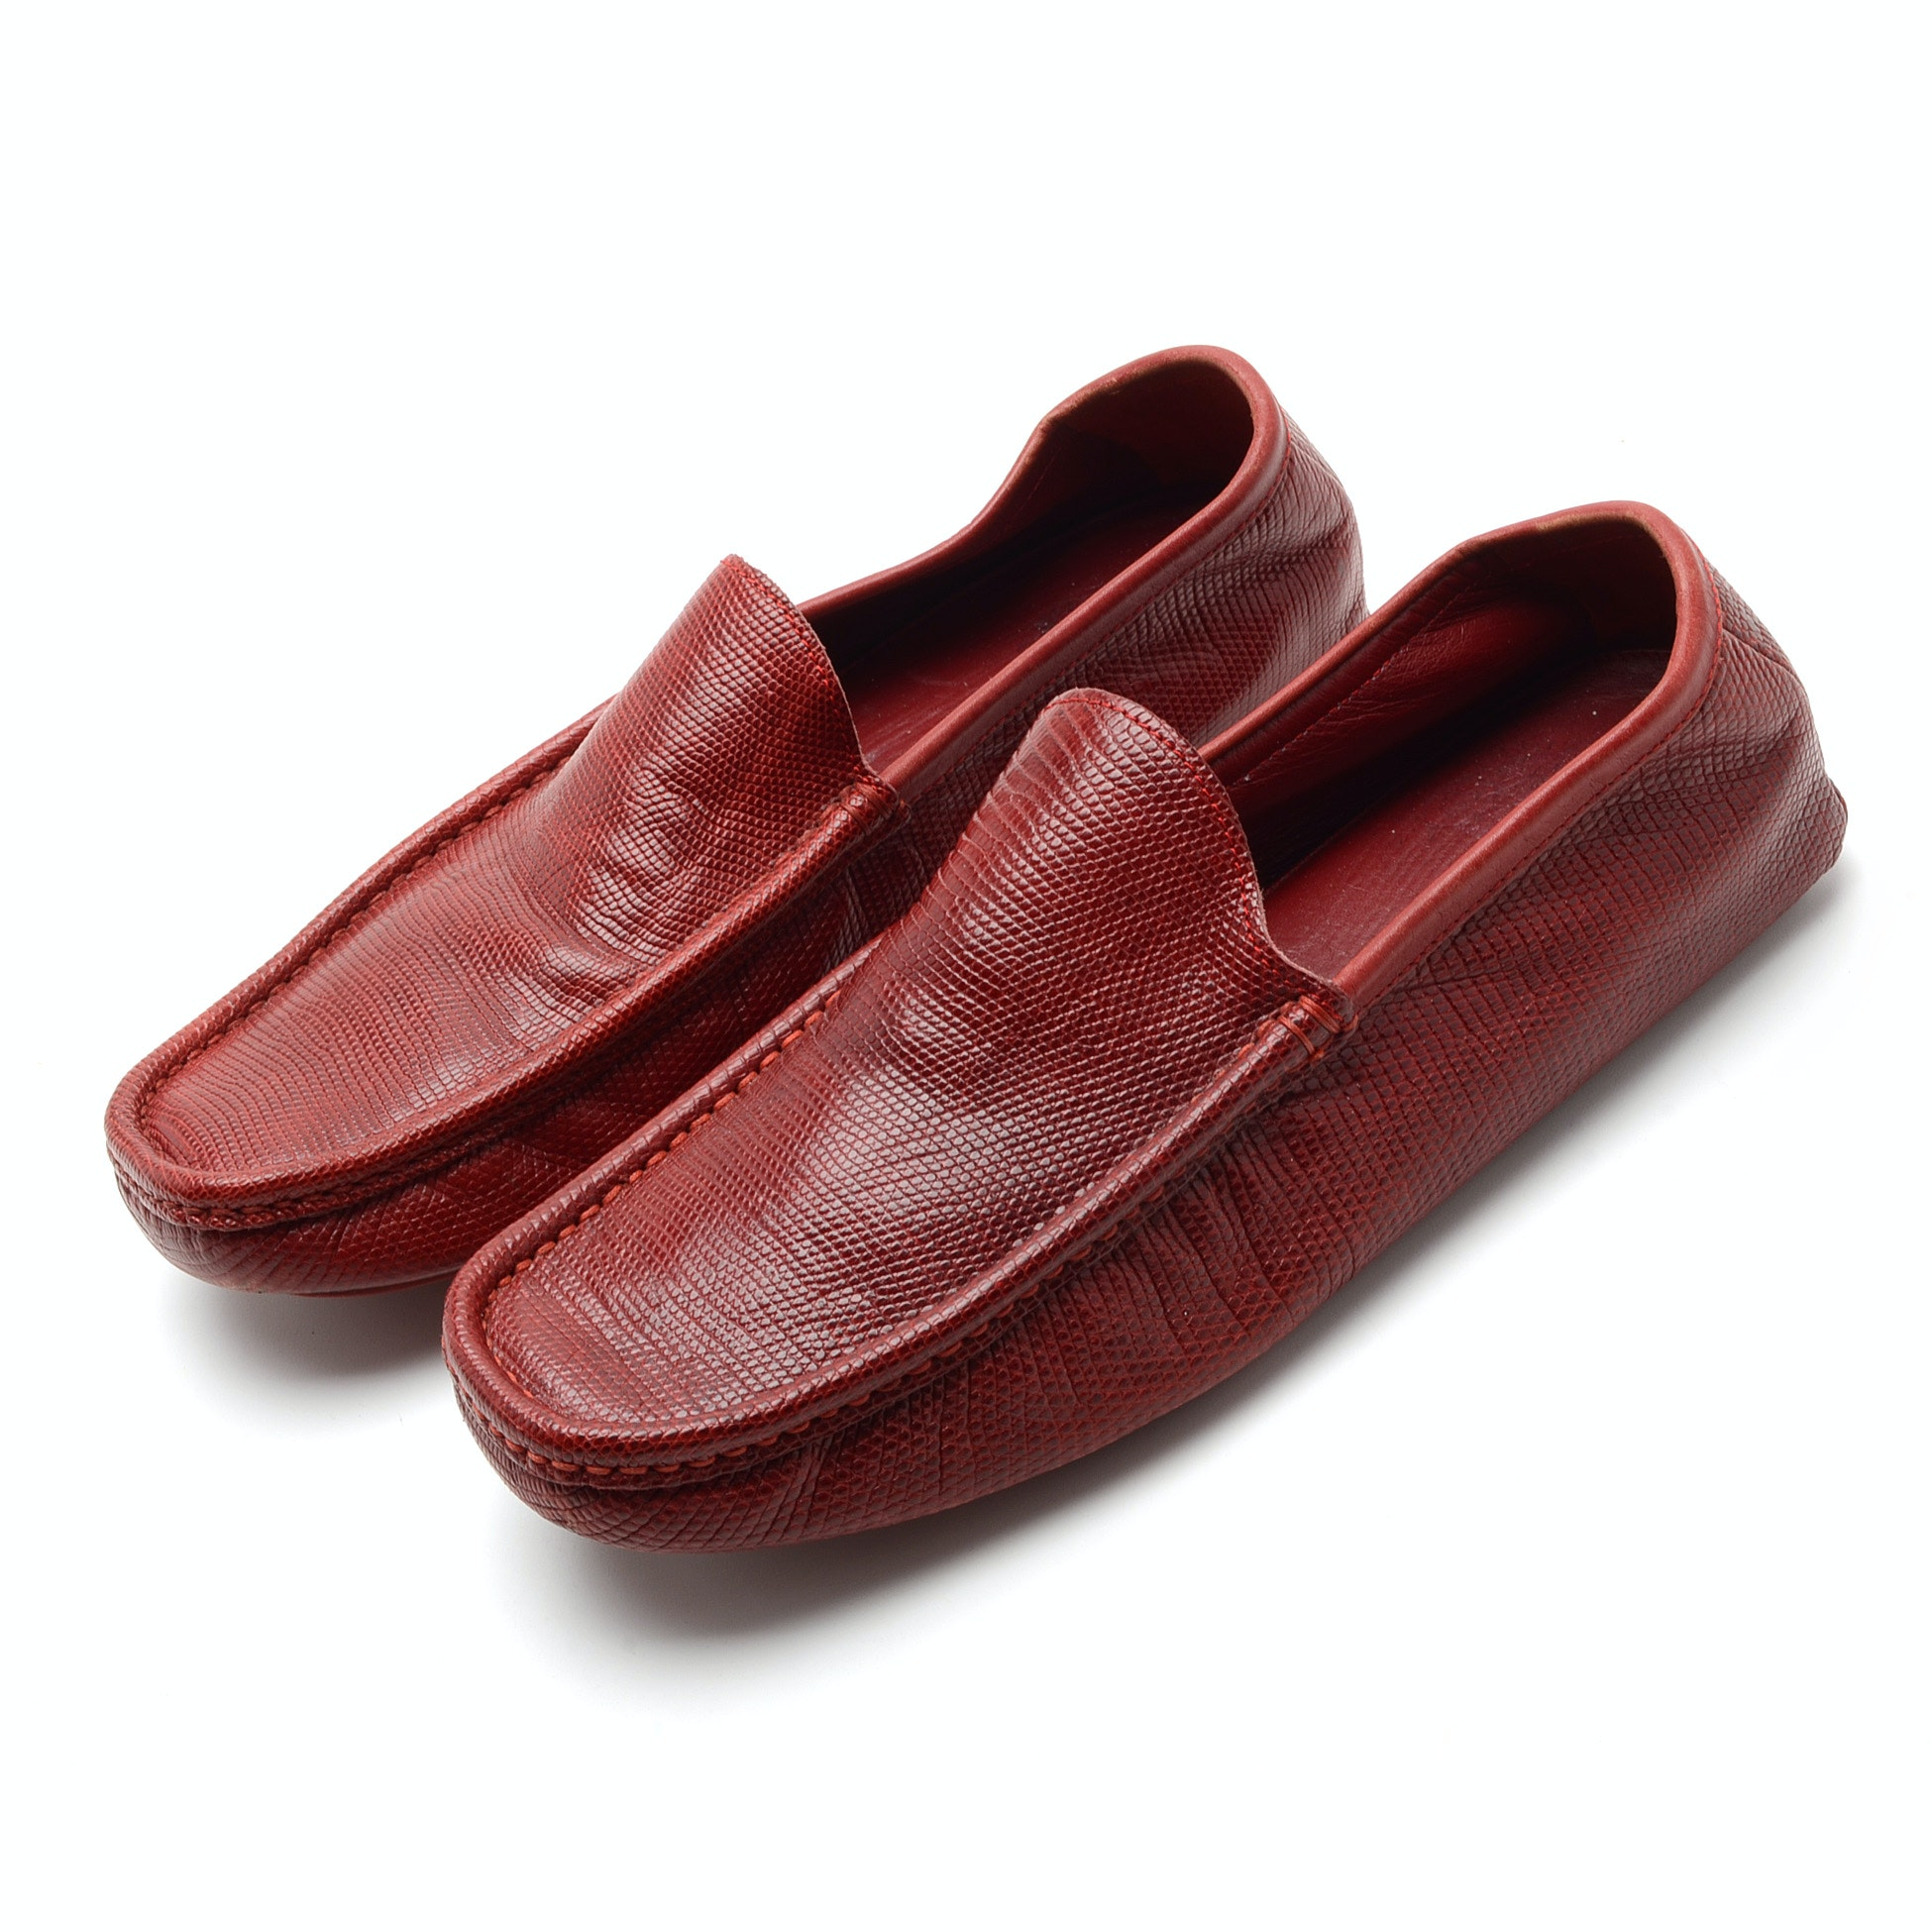 Men's Valentino Garavani Red Lizard Skin Driving Loafers, Made in Italy